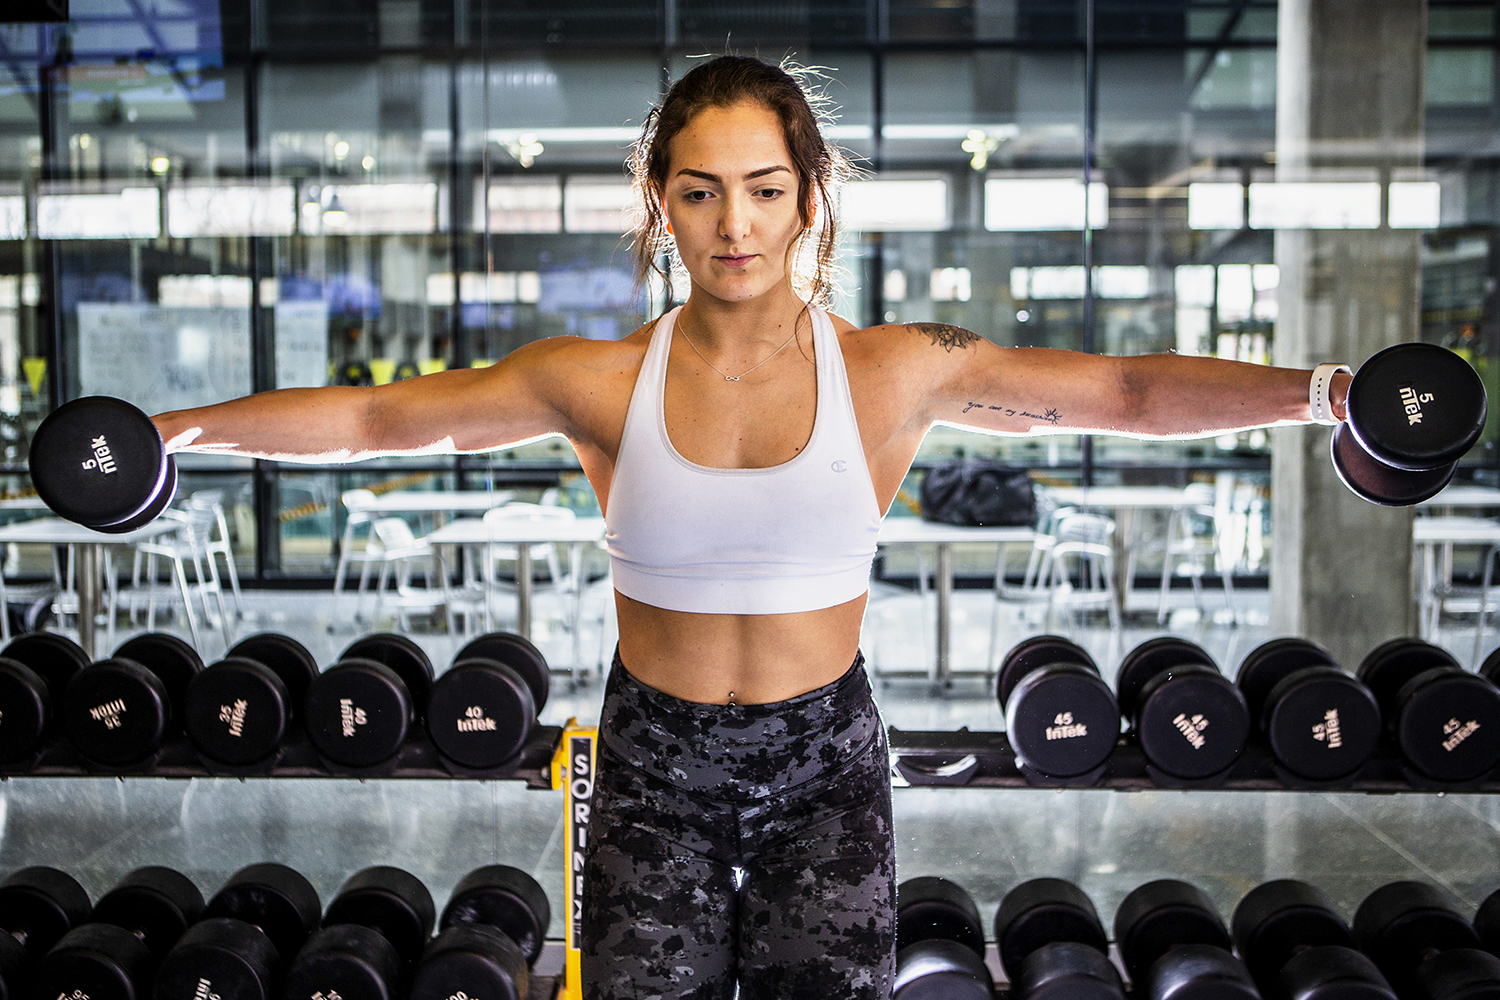 Camille Lazzarotto lifts weights at the CRWC on Wednesday, March 6, 2019. Lazzarotto is an athletic trainer at the recreation center and works out in-between the times she has clients.